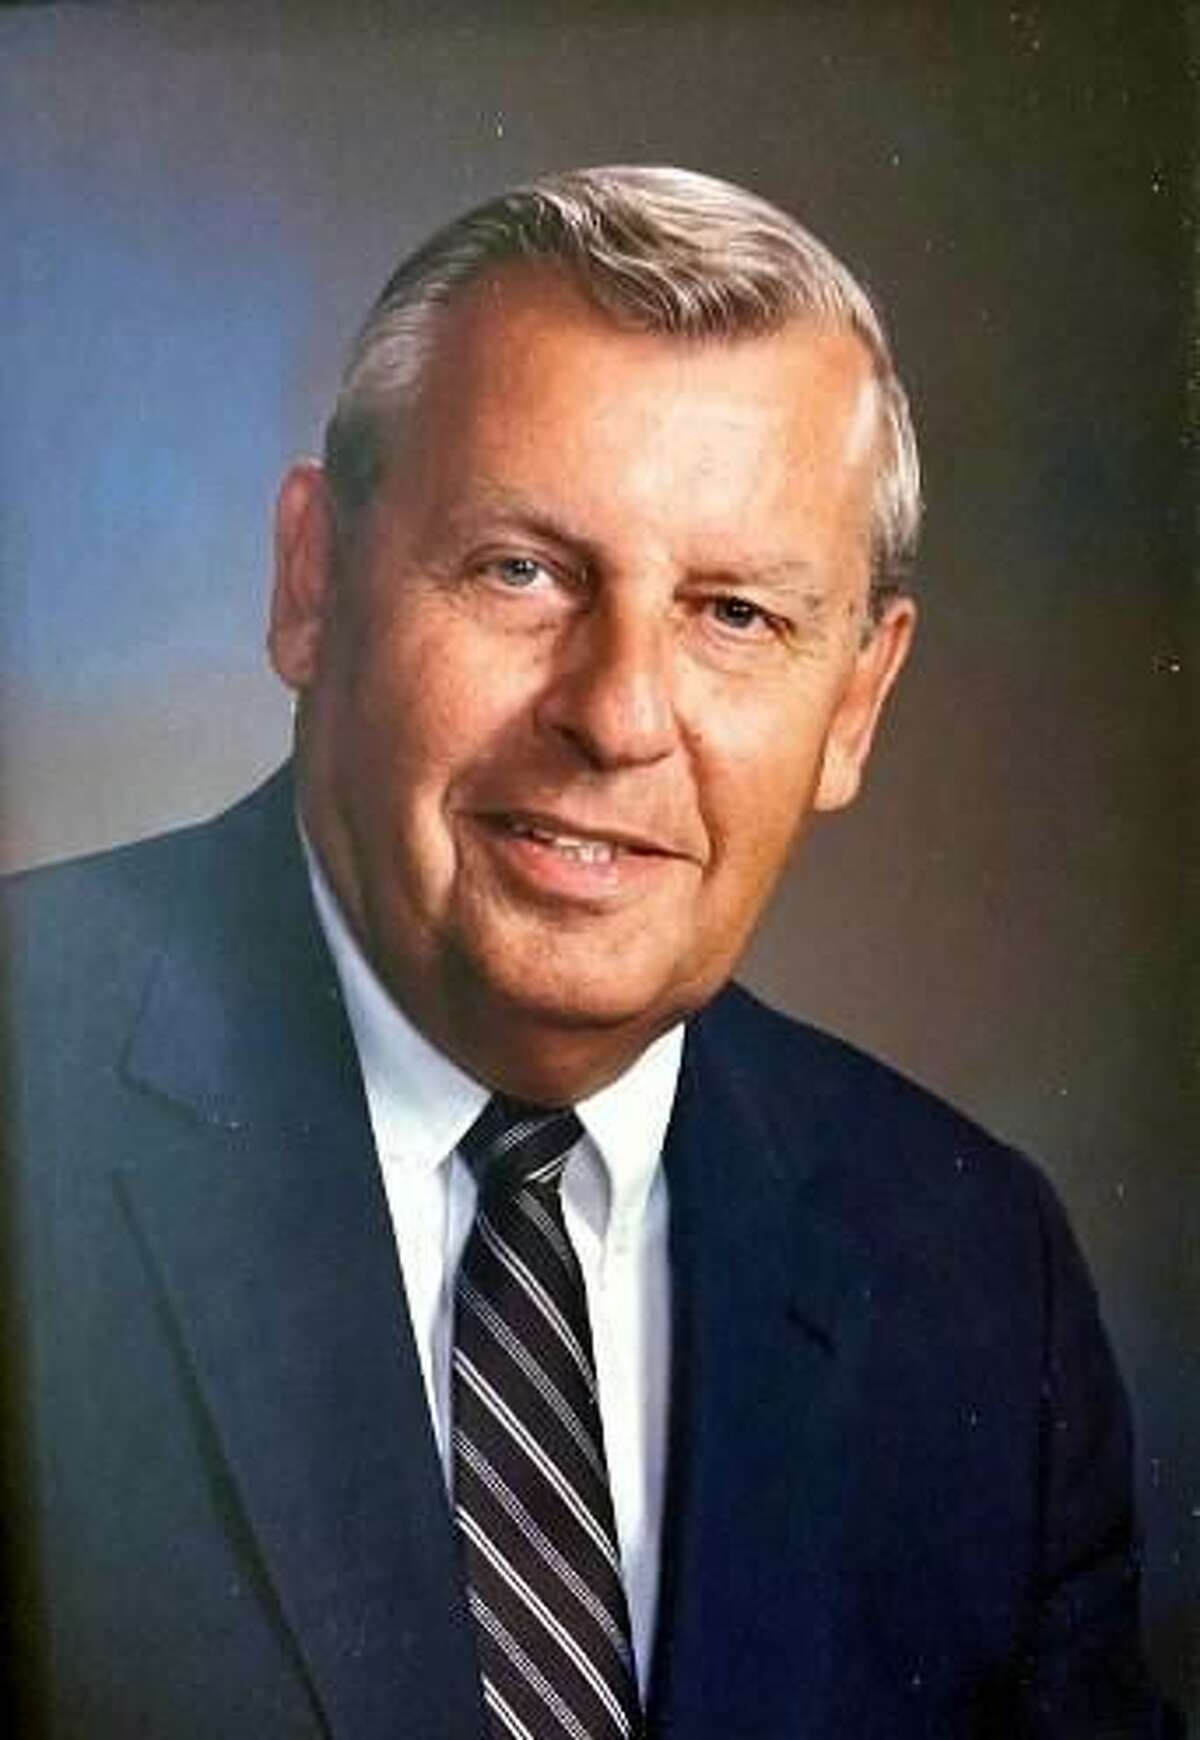 William A. Little was the city of Sugar Land's second-ever mayor. He died on Jan. 13, 2021.